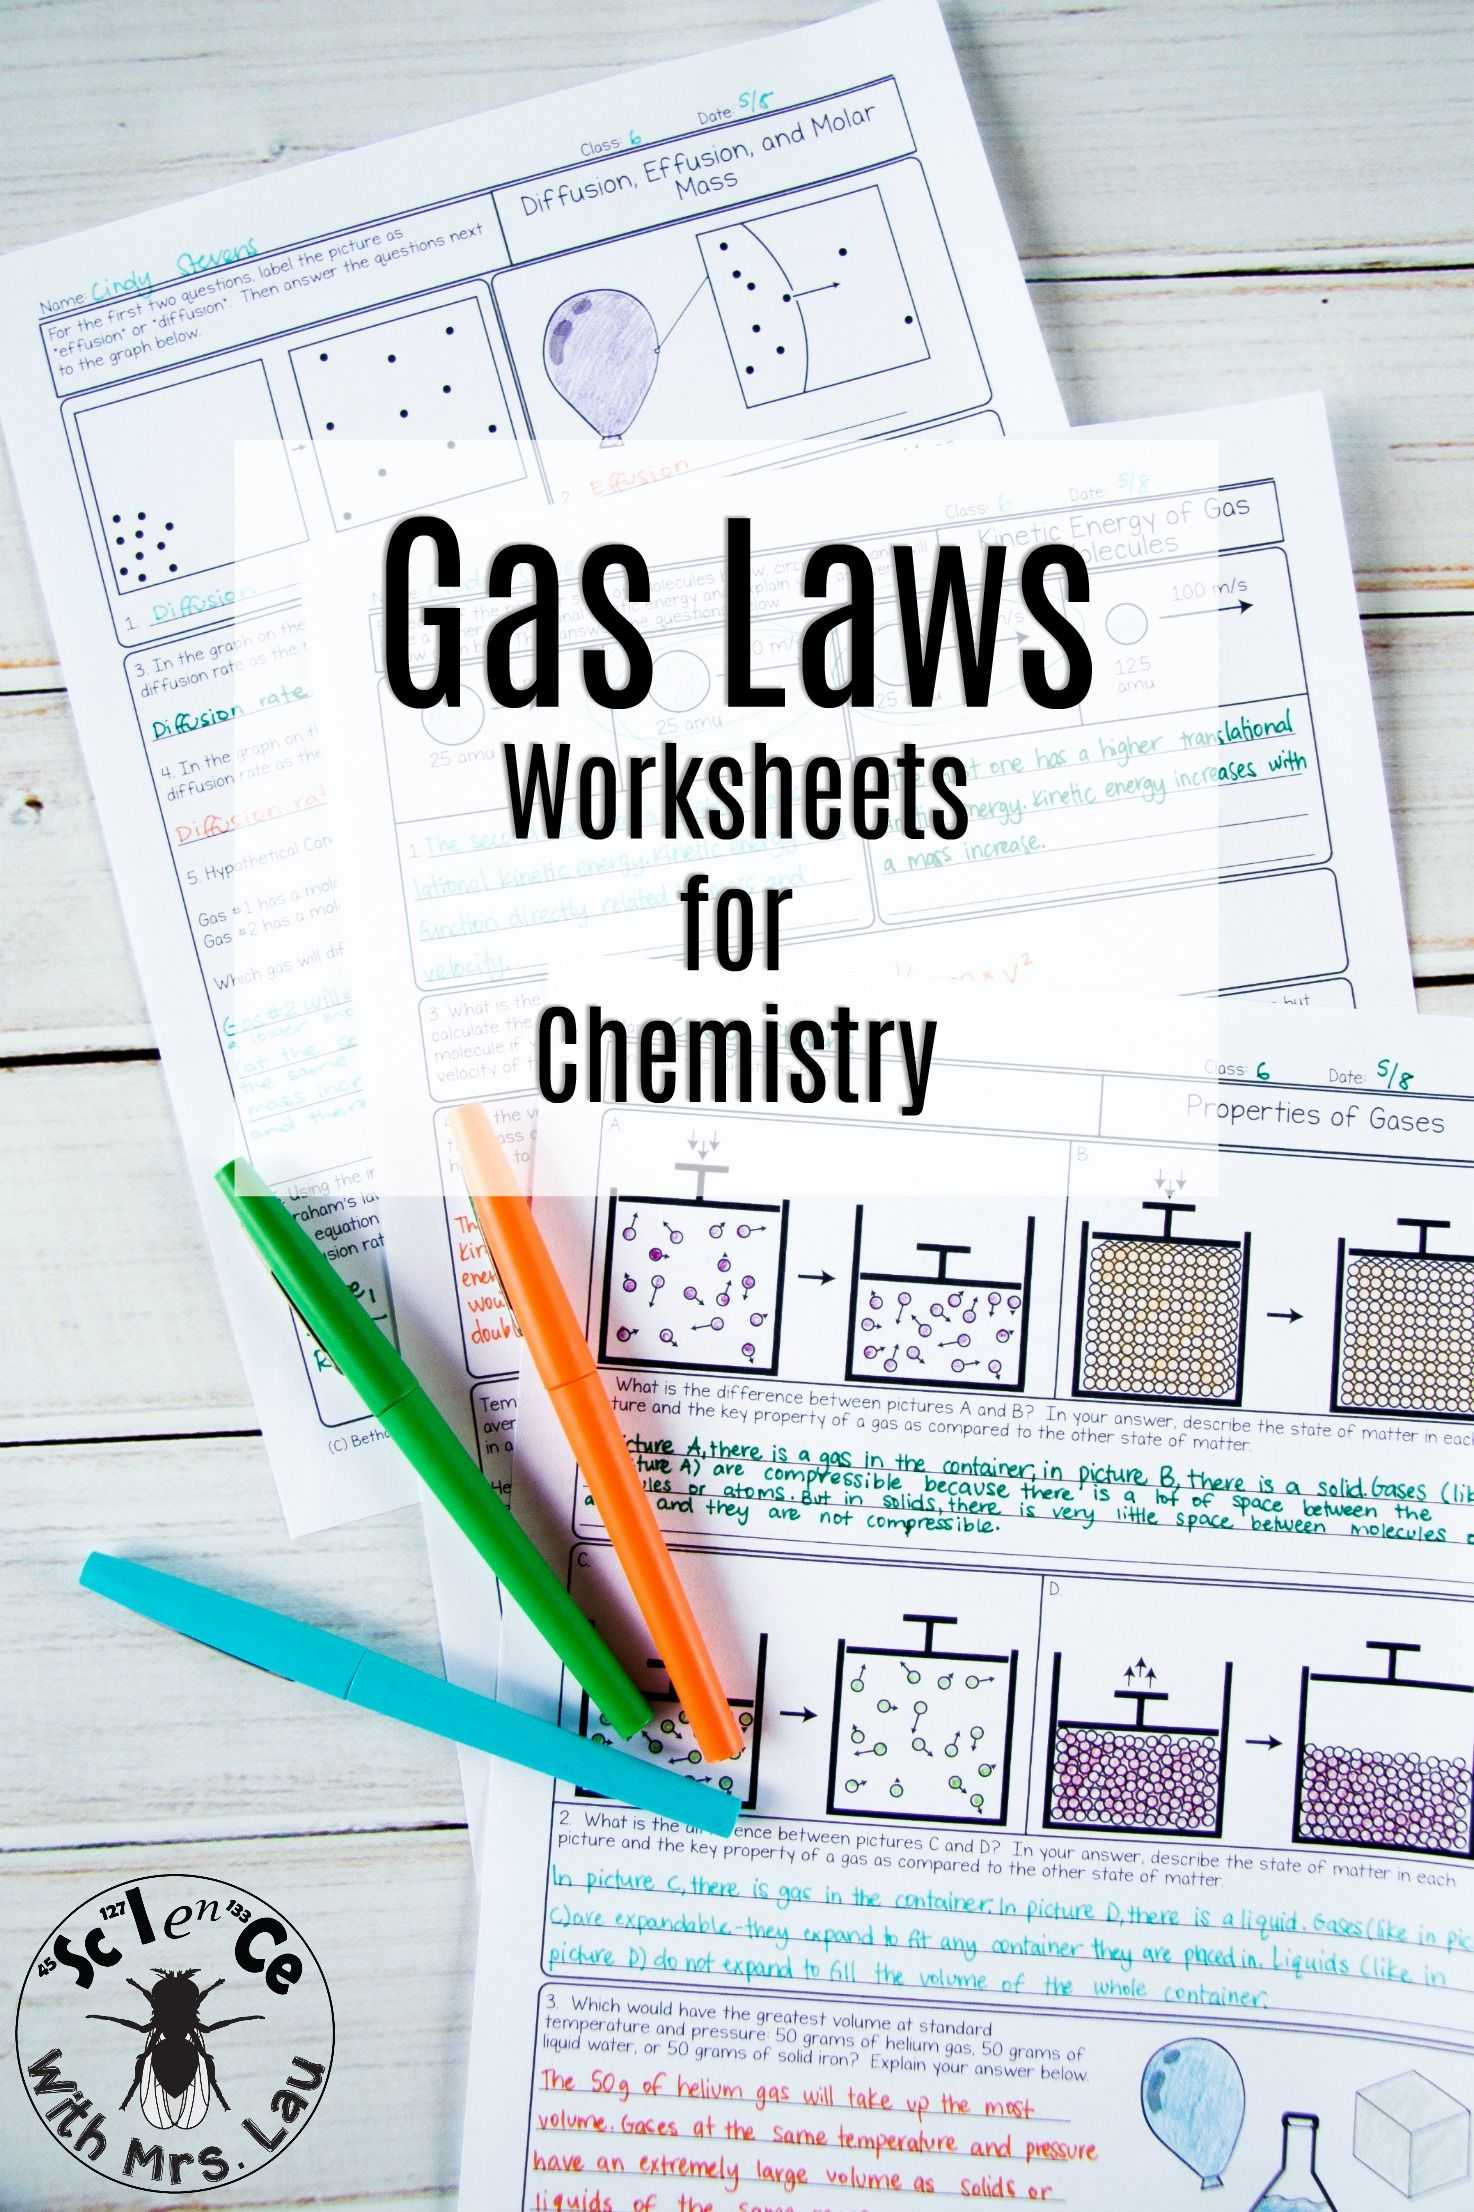 Mole Ratio Worksheet Along with Gas Laws Chemistry Homework Pages